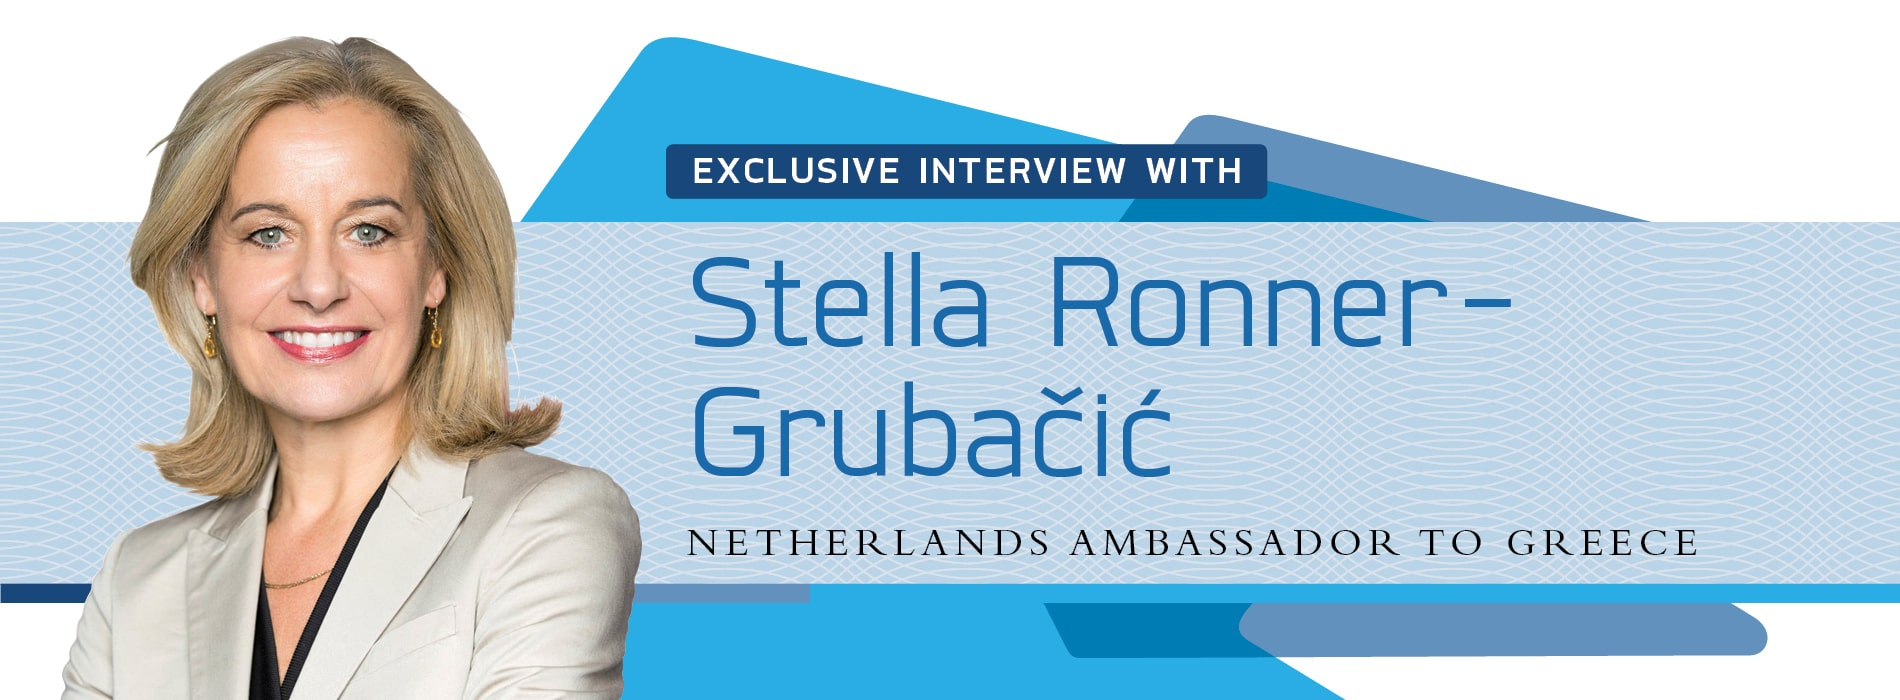 Interview with Stella Ronner-Grubačić,Netherlands Ambassador to Greece